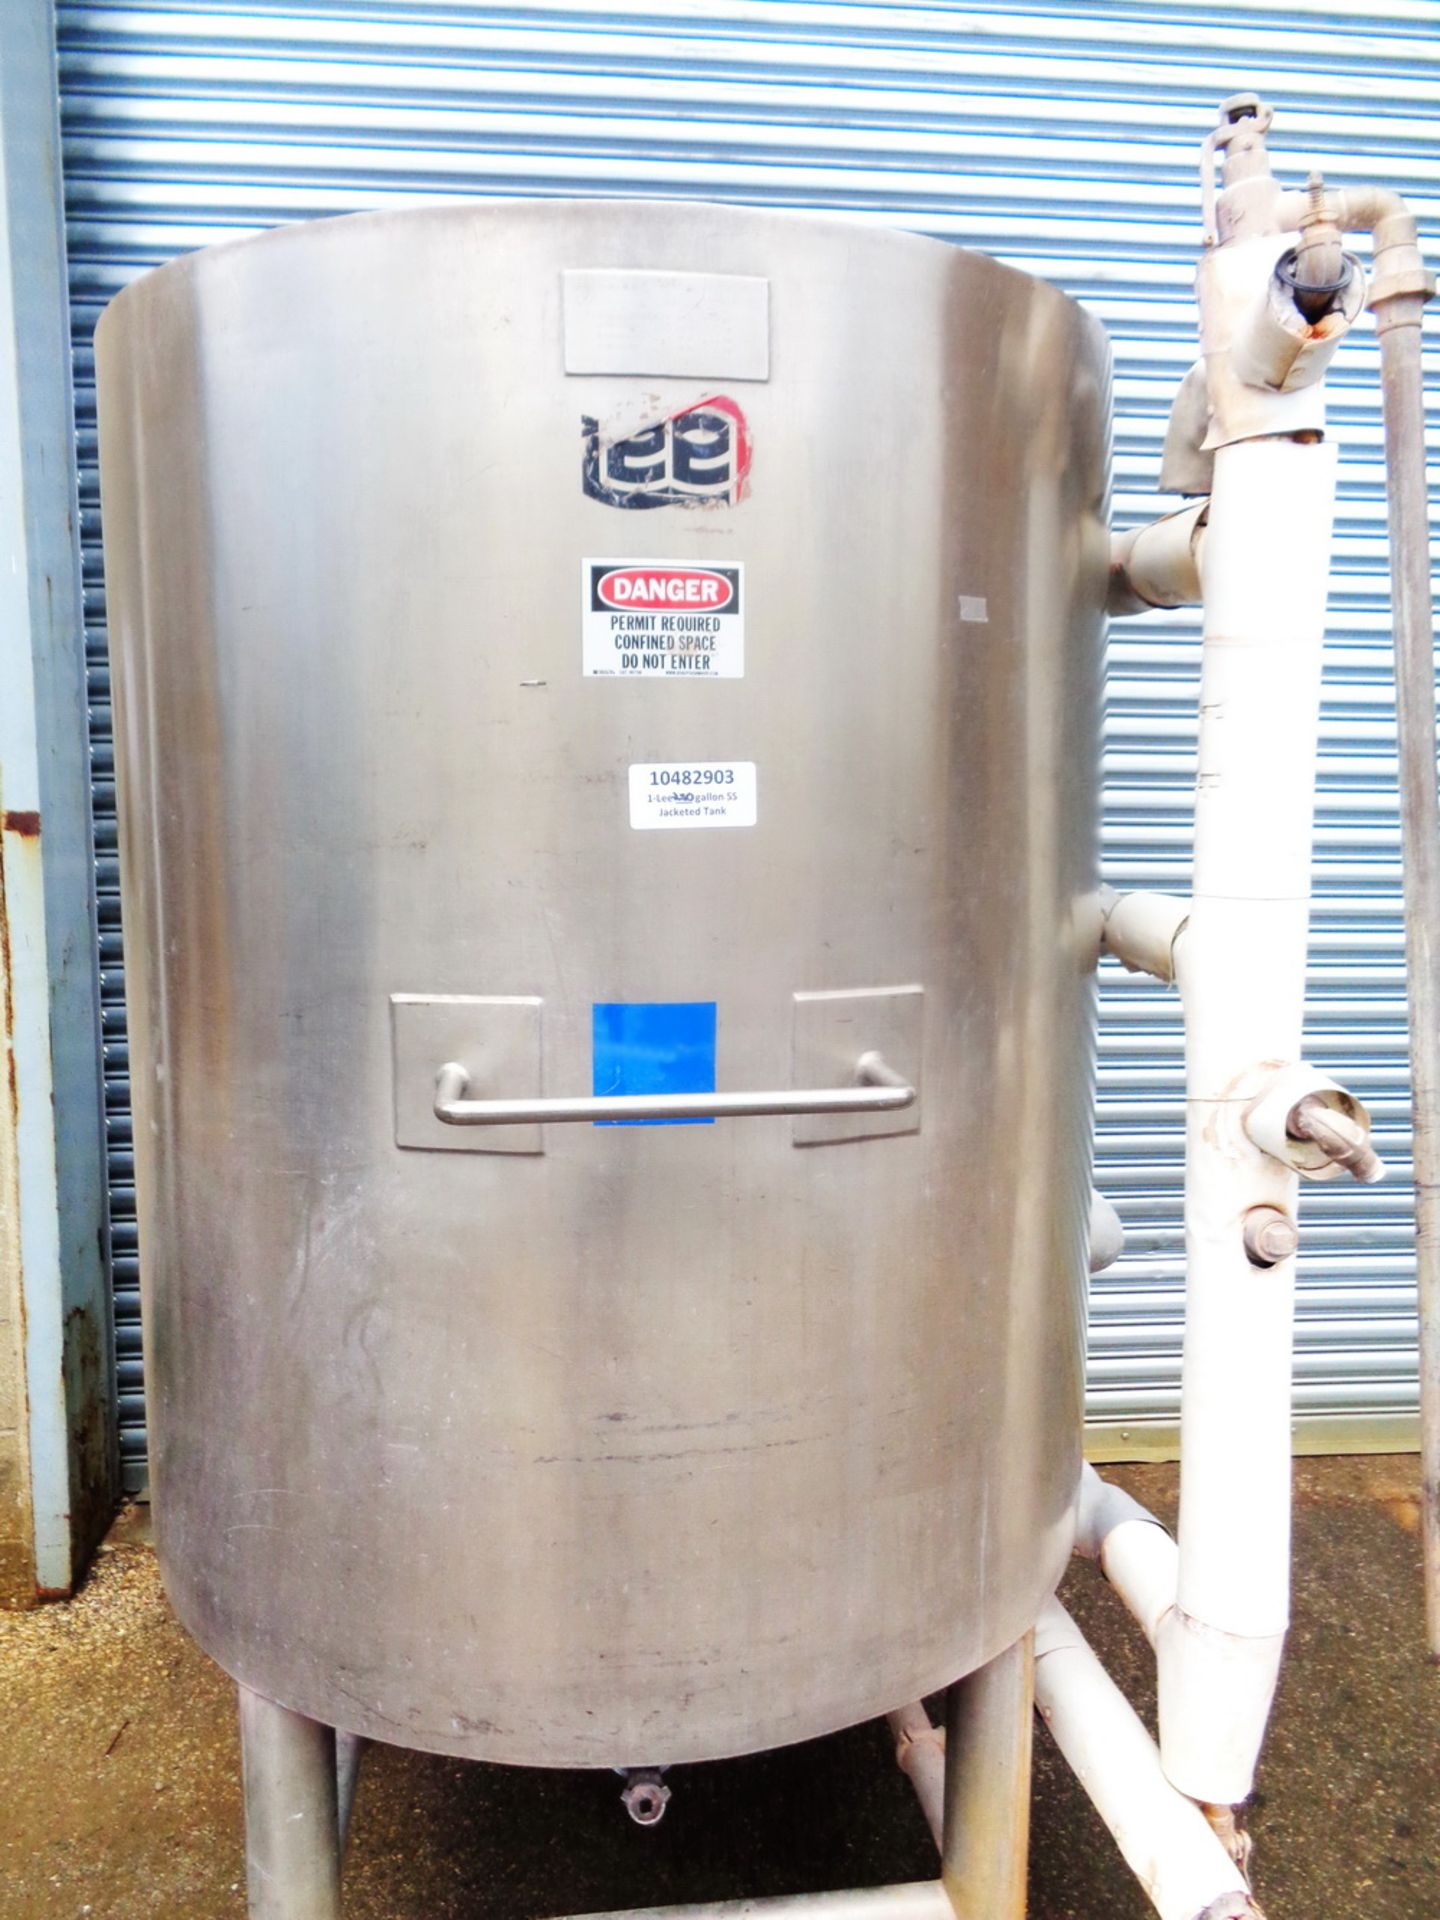 Lee 250 gallon Stainless Steel Jacketed Tank/Kettle, Model 250U - Image 3 of 9